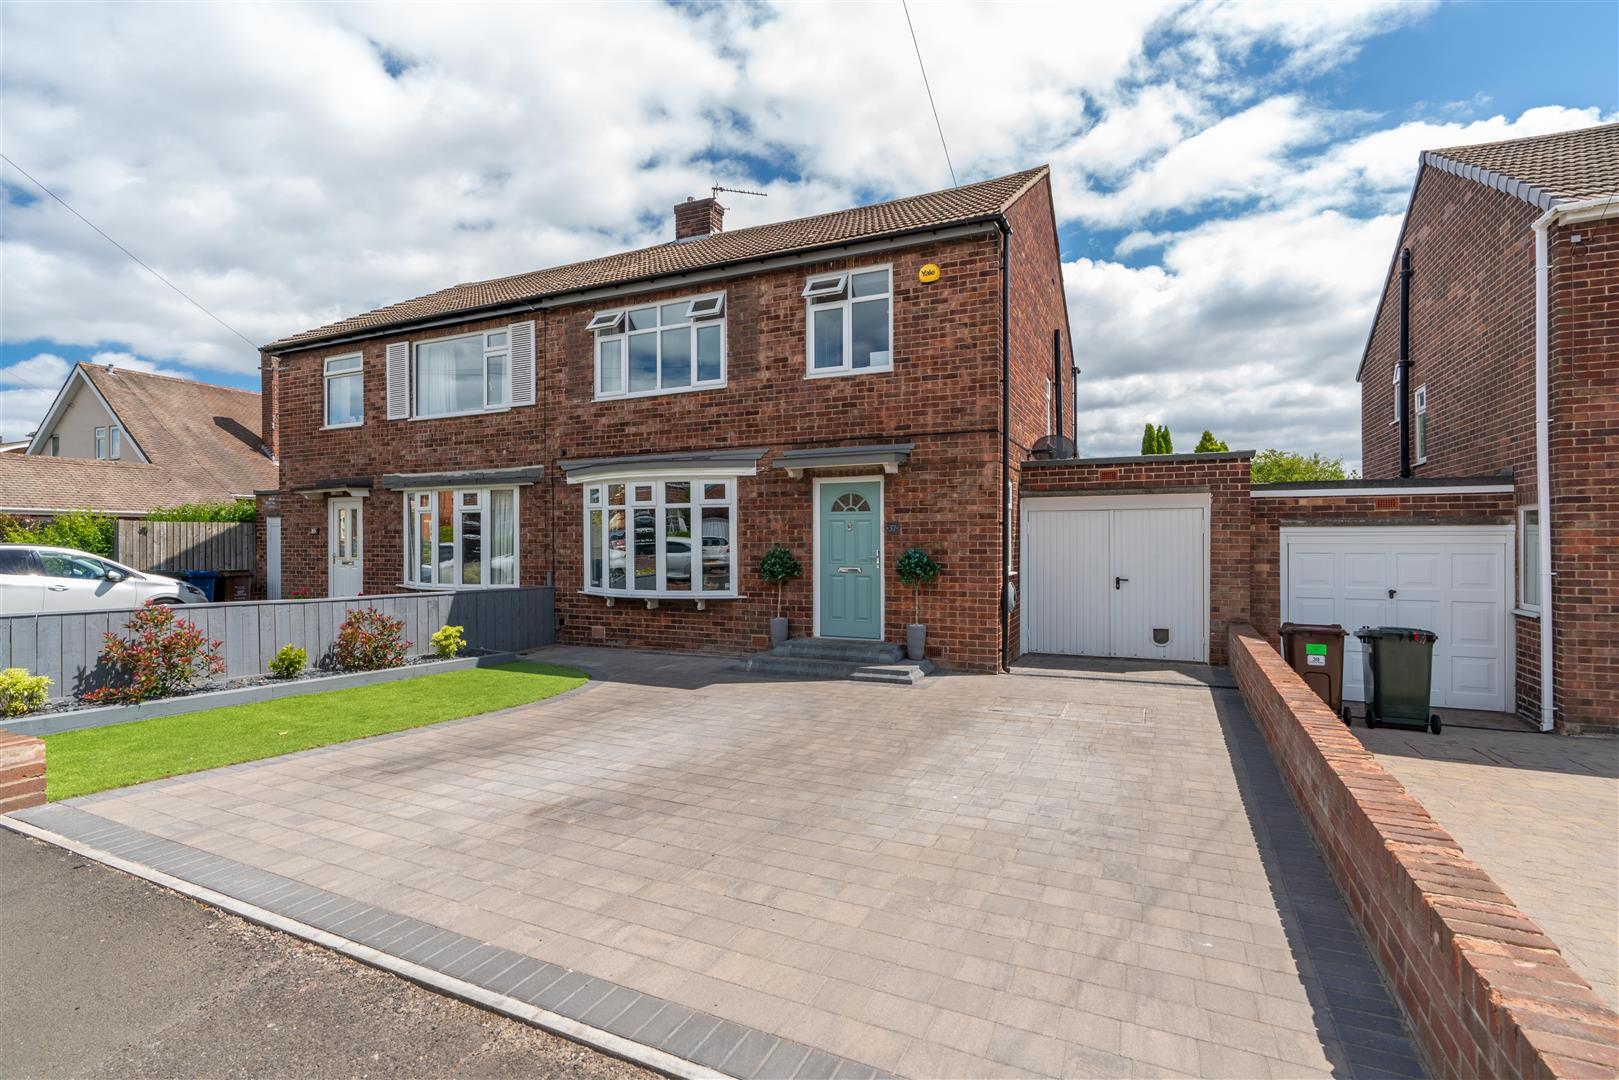 3 bed semi-detached house for sale in Princes Road, Newcastle Upon Tyne, NE3